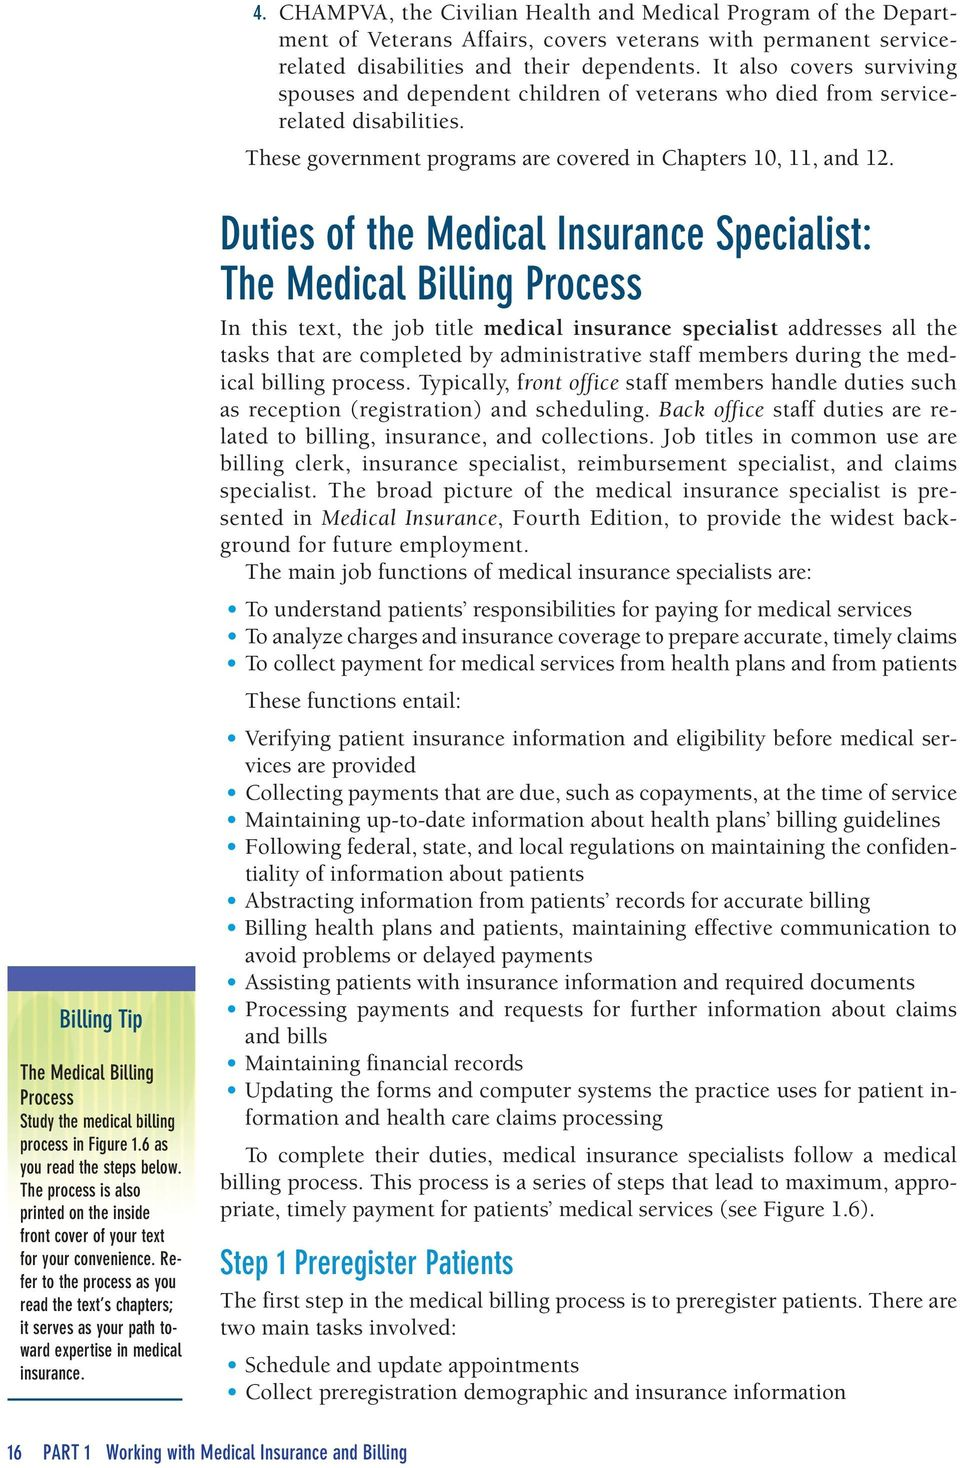 Billing Tip The Medical Billing Process Study the medical billing process in Figure 1.6 as you read the steps below.